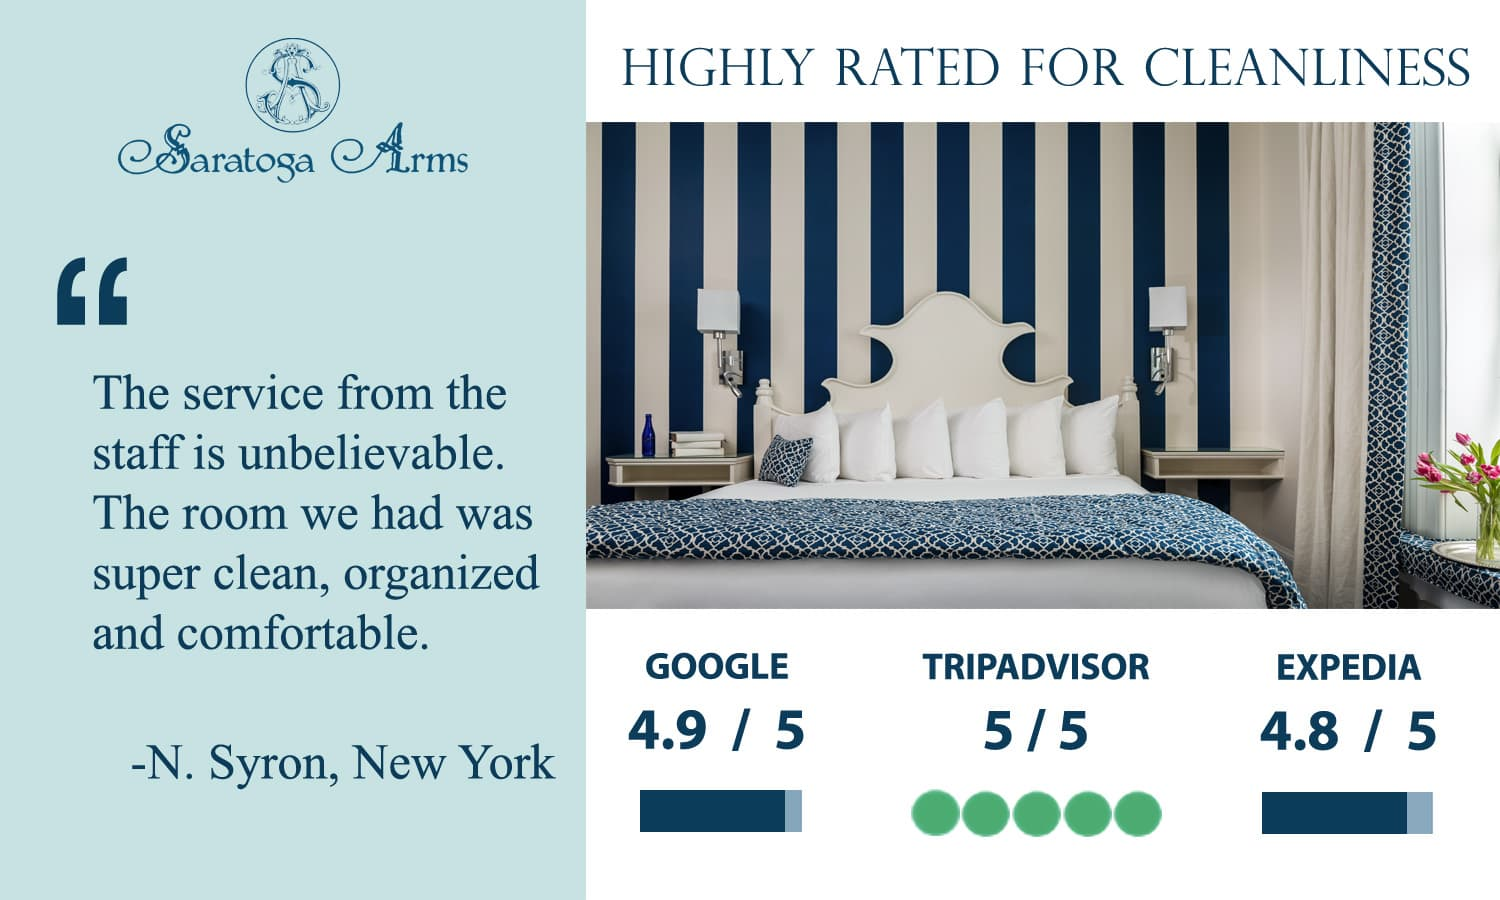 Trip Advisor rating scores